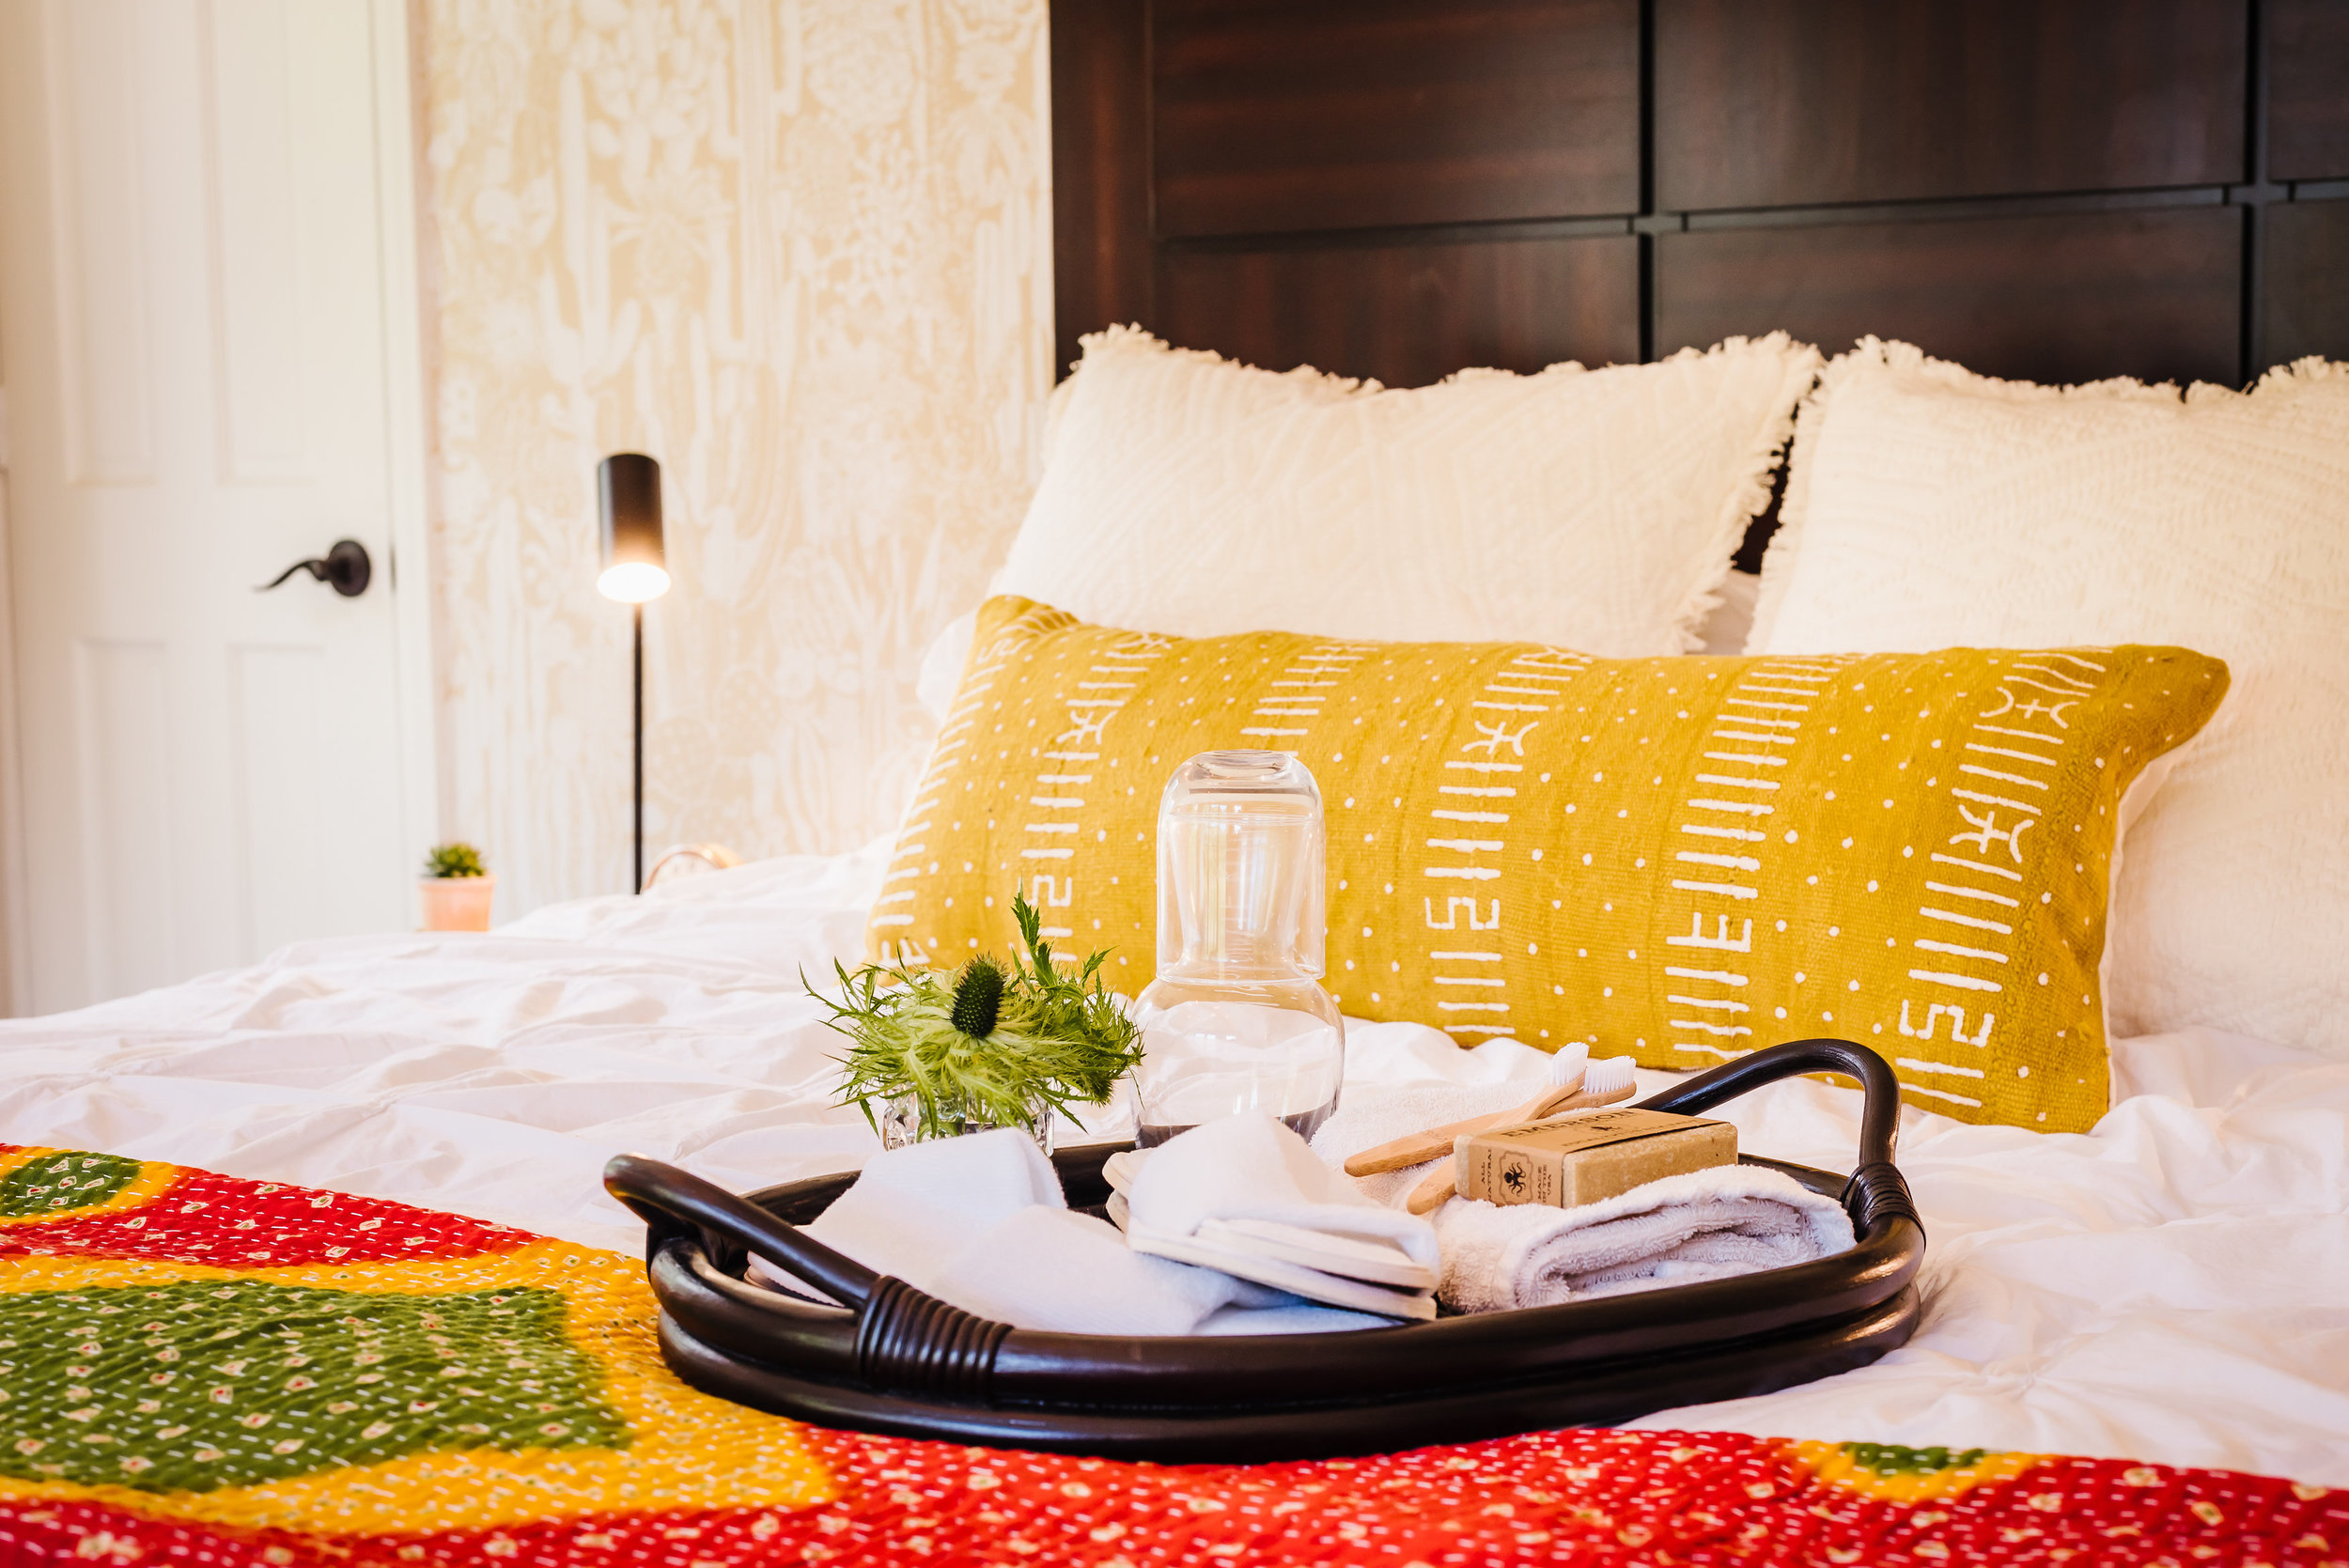 Tampa-Commercial-Photography-Daly-Digs-Interior-Design-Bedroom.jpg